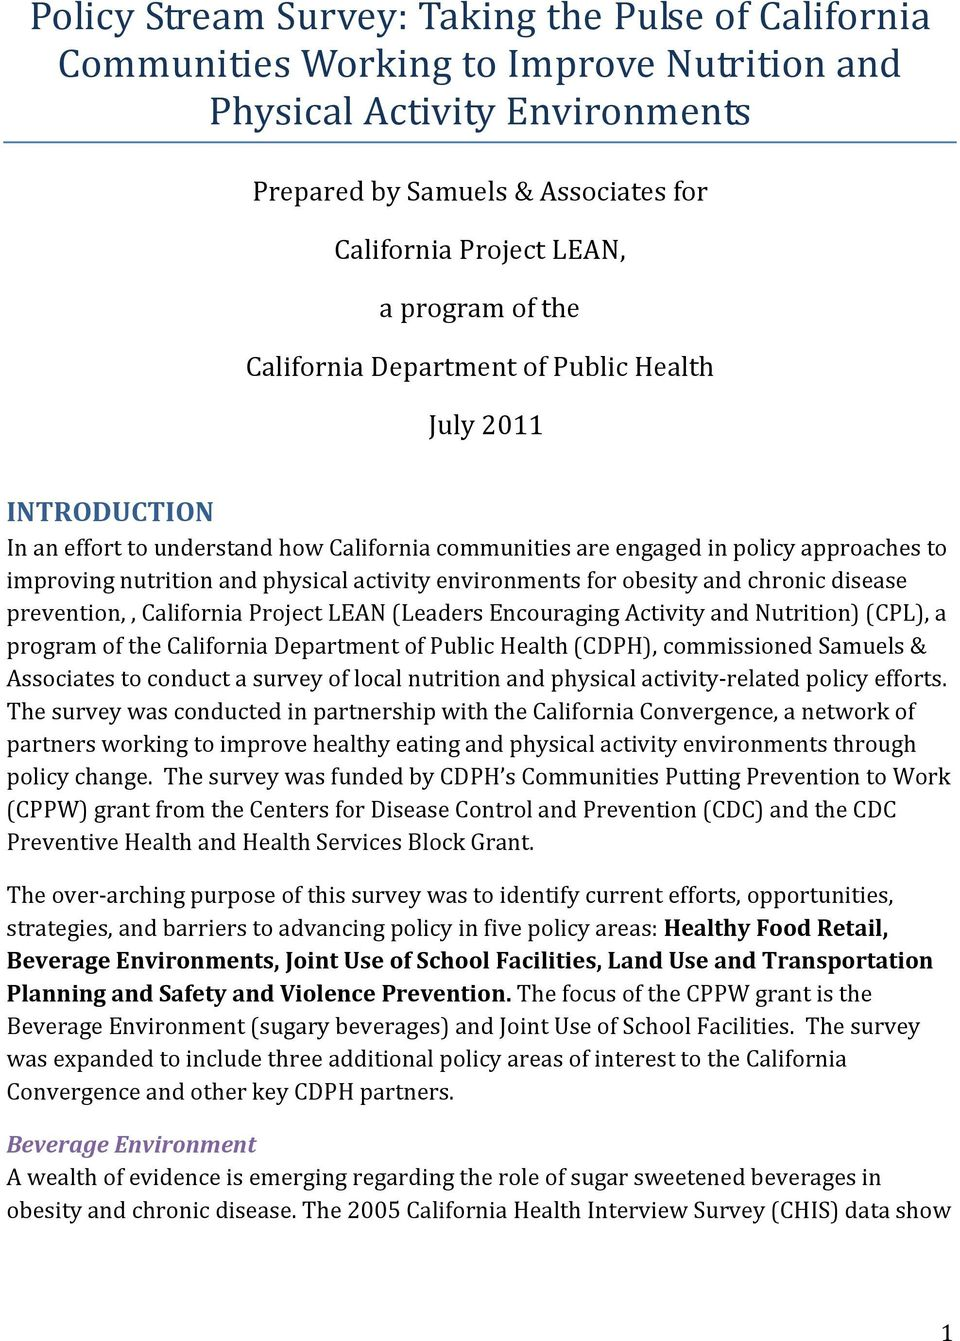 activity environments for obesity and chronic disease prevention,, California Project LEAN (Leaders Encouraging Activity and Nutrition) (CPL), a program of the California Department of Public Health